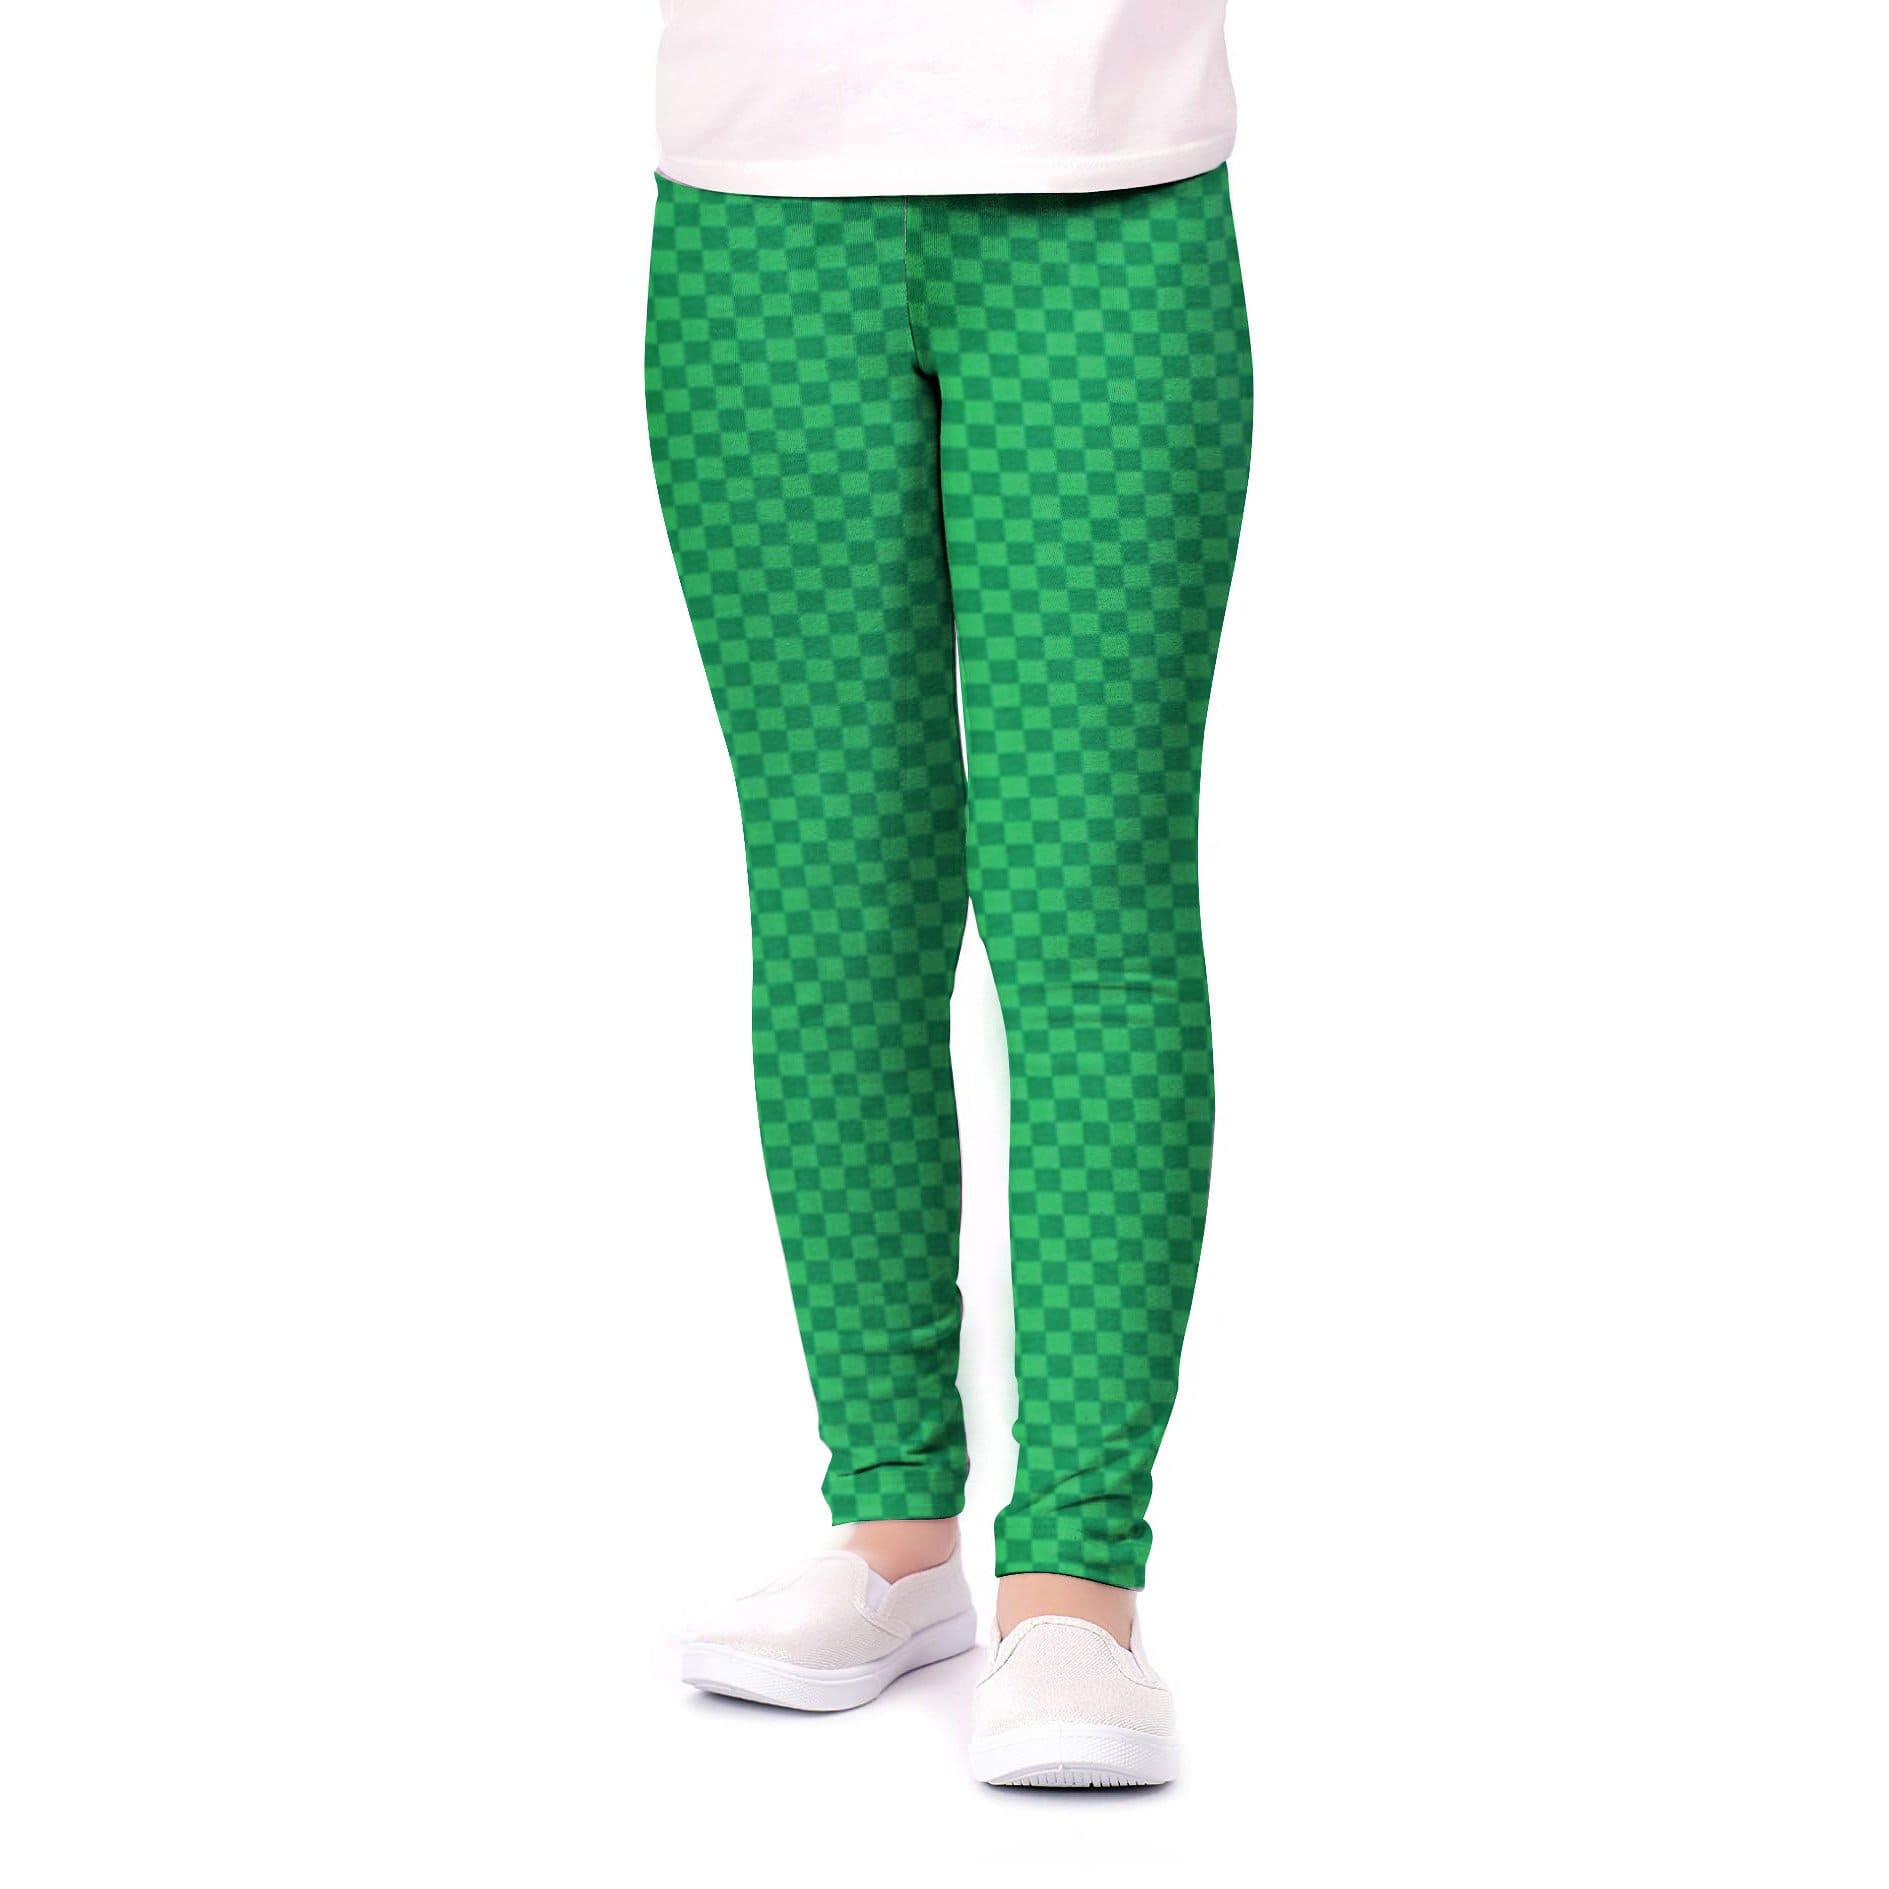 Stone Harbor Girl's Leggings Green / 2-3 Years Stone Harbor Girl's Green Checkered Leggings